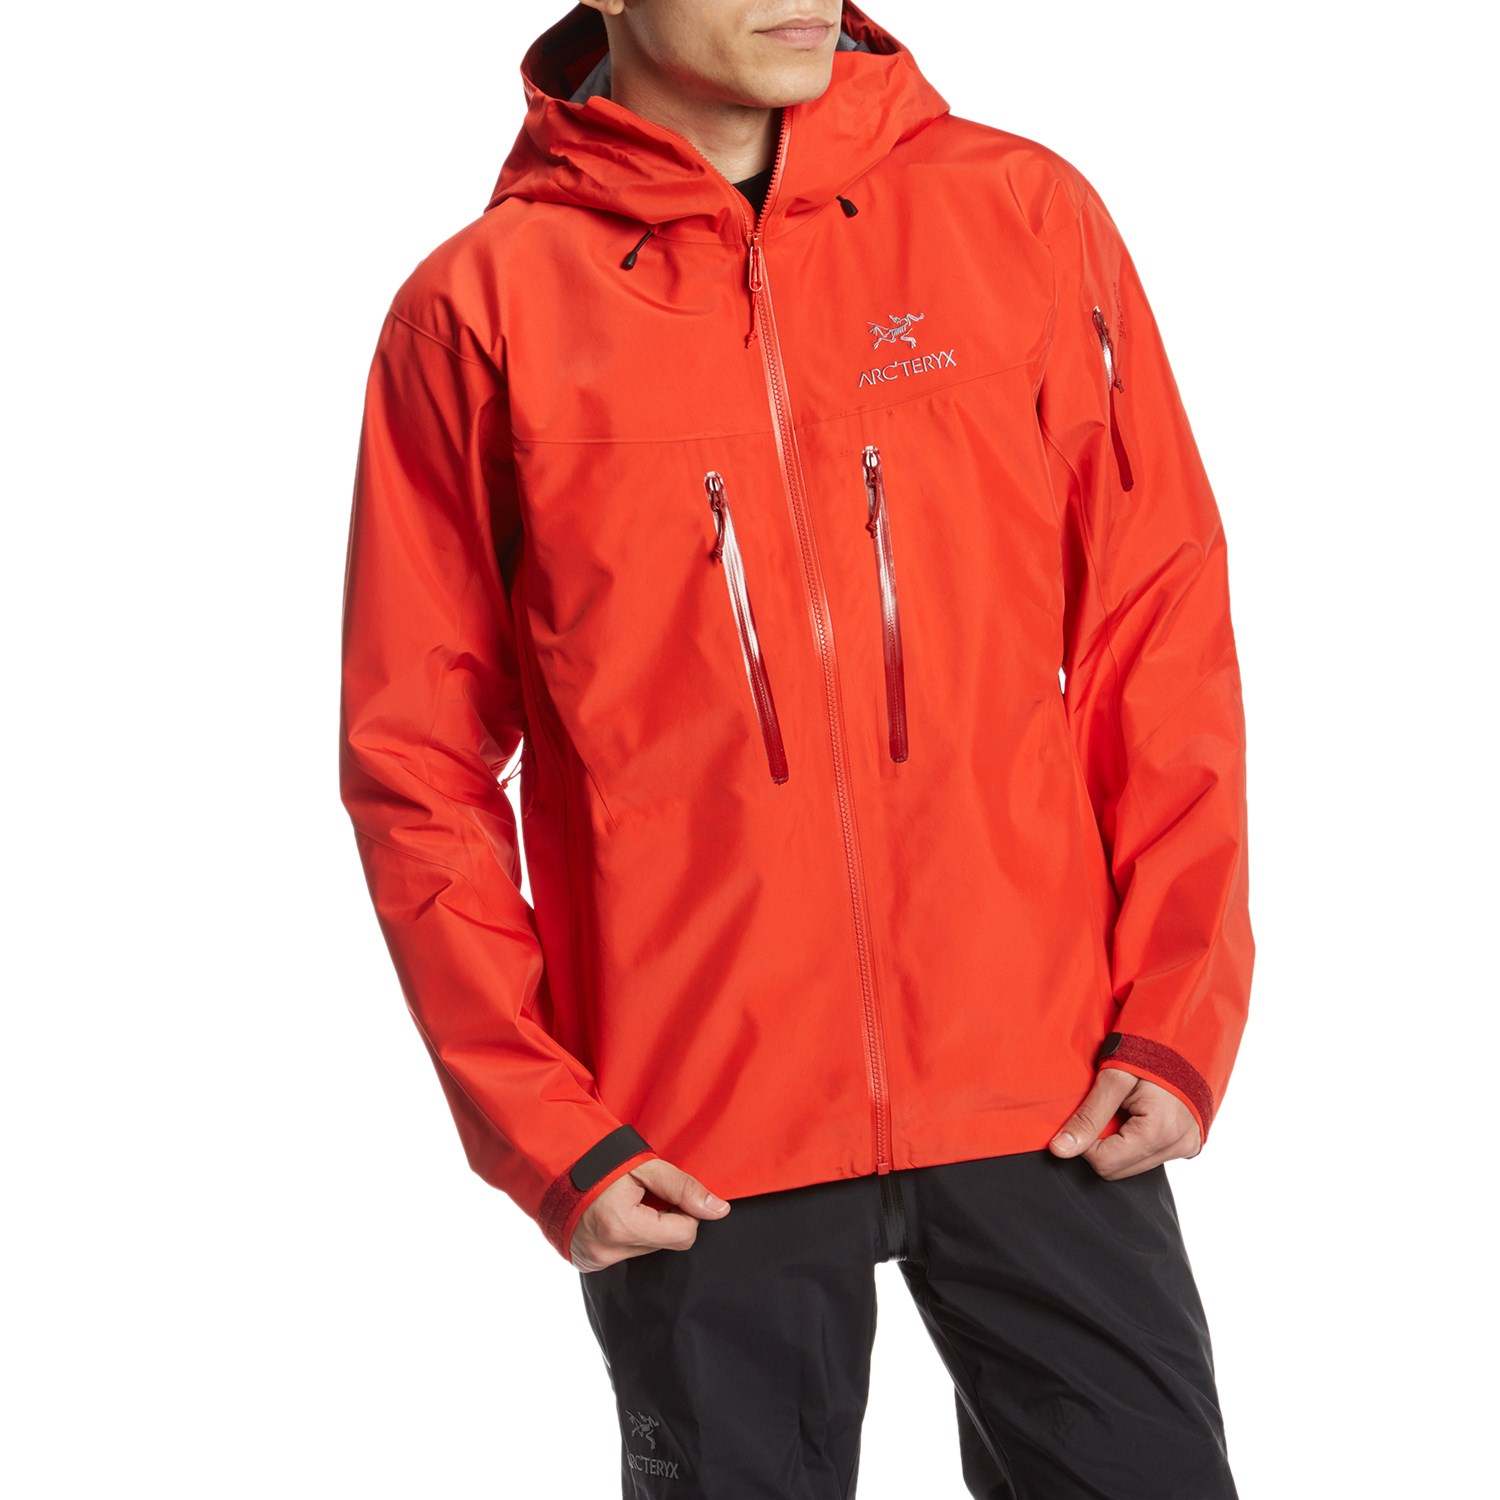 09a0d6867db Arc'teryx Alpha SV Jacket | evo